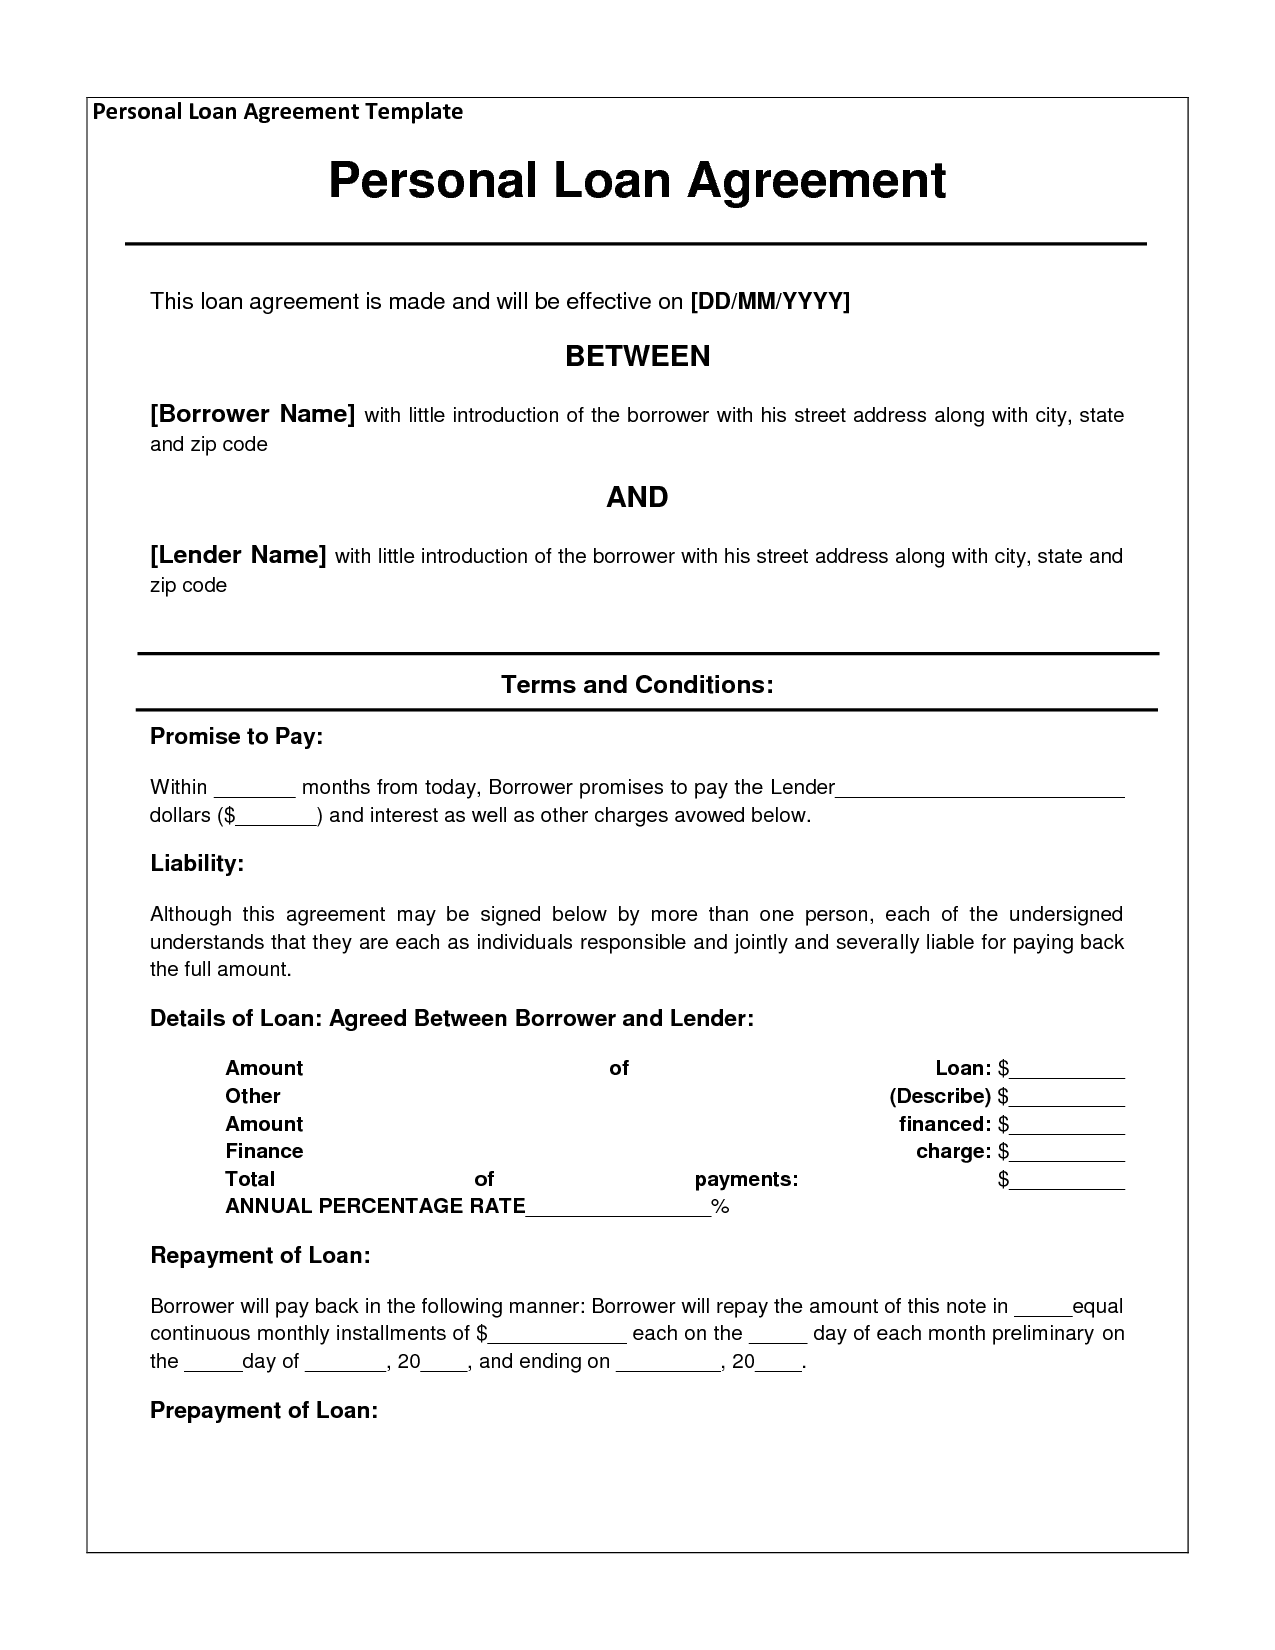 Wonderful Personal Loan Agreement And Loan Contract Template